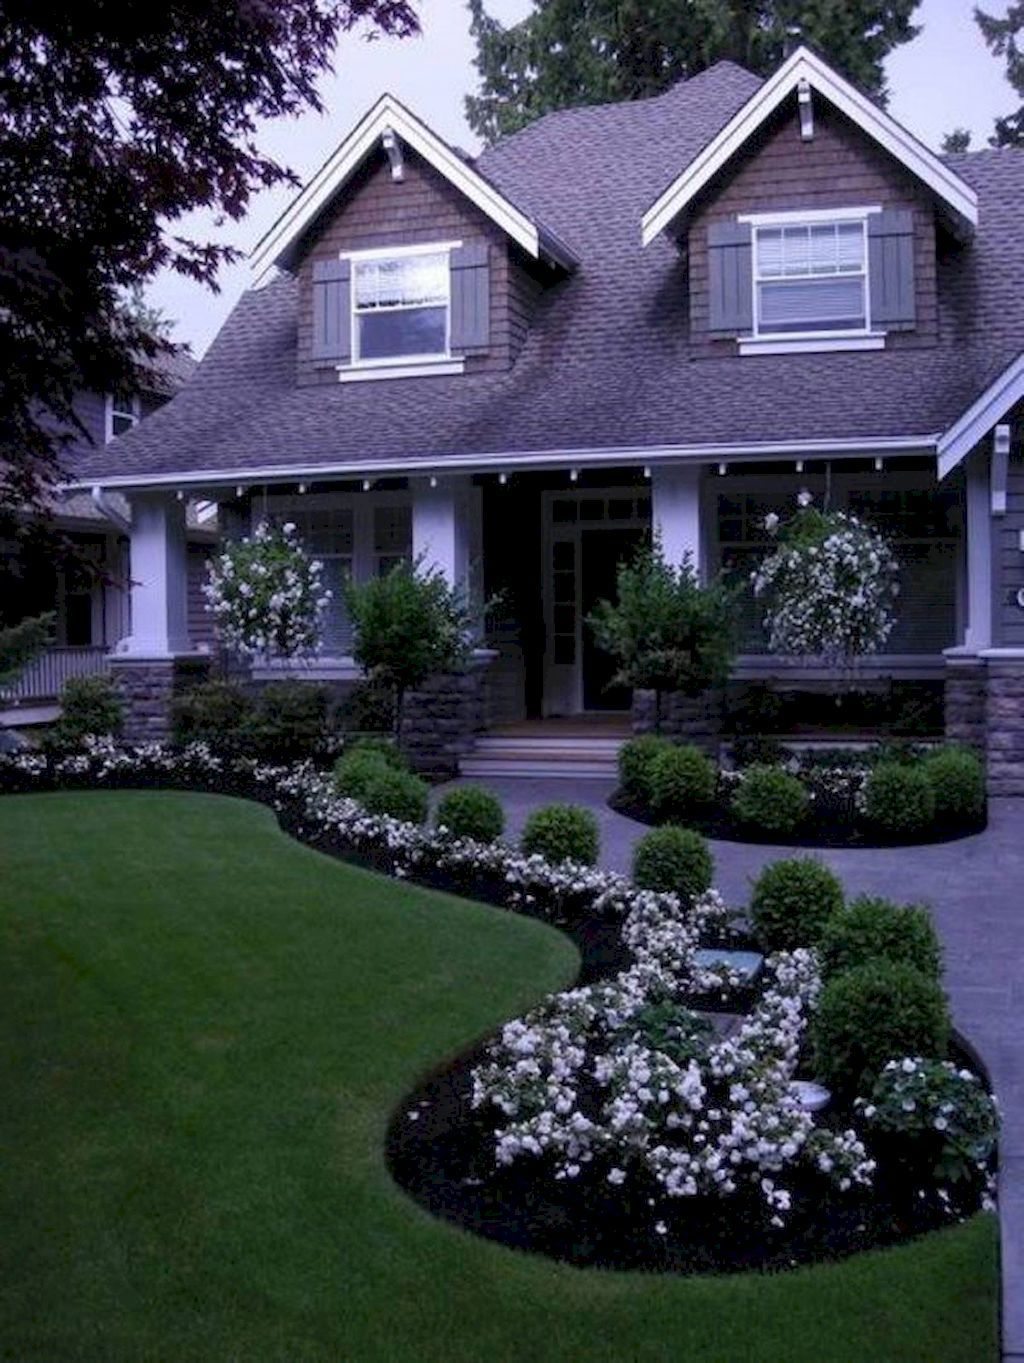 40 beautiful front yard landscaping ideas yard for House garden landscape